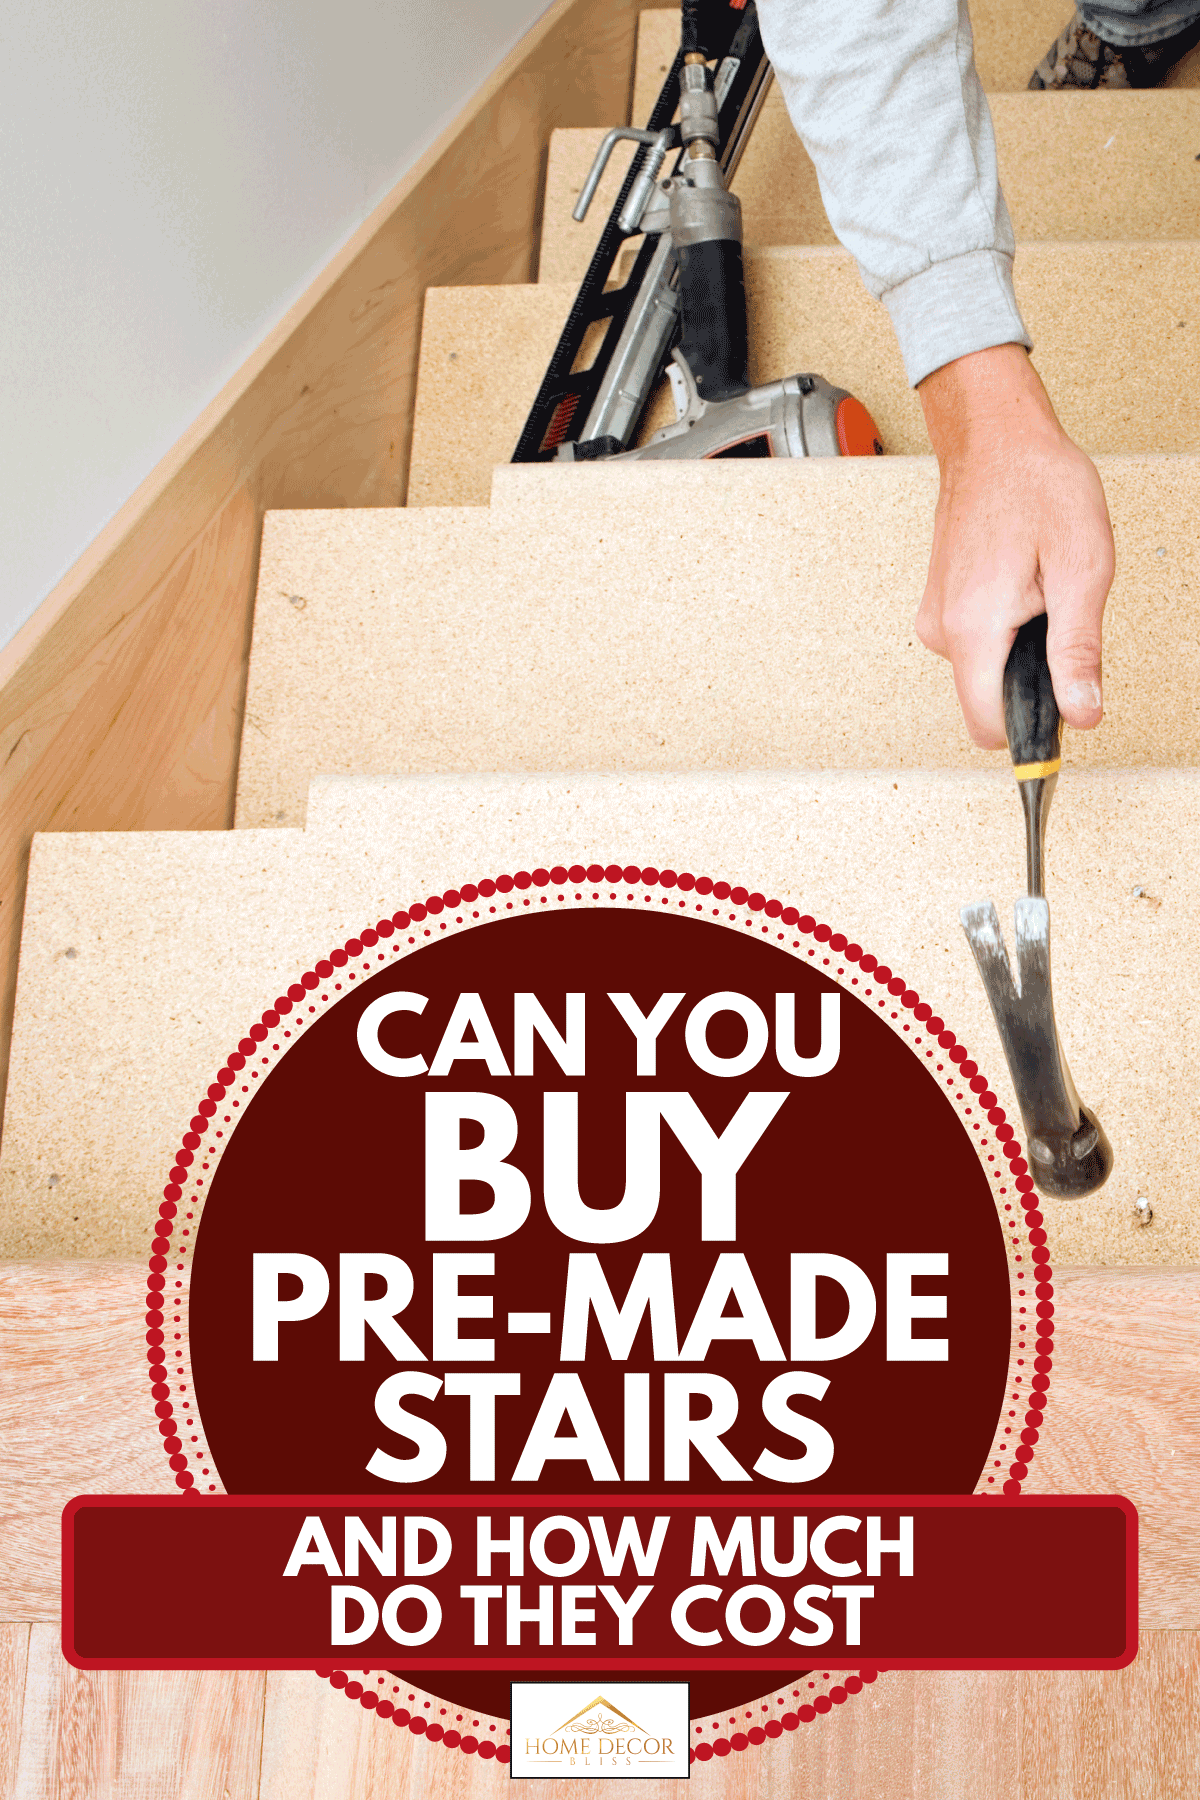 A carpenter installing pre-made stairs by hand, Can You Buy Pre-Made Stairs (And How Much Do They Cost)